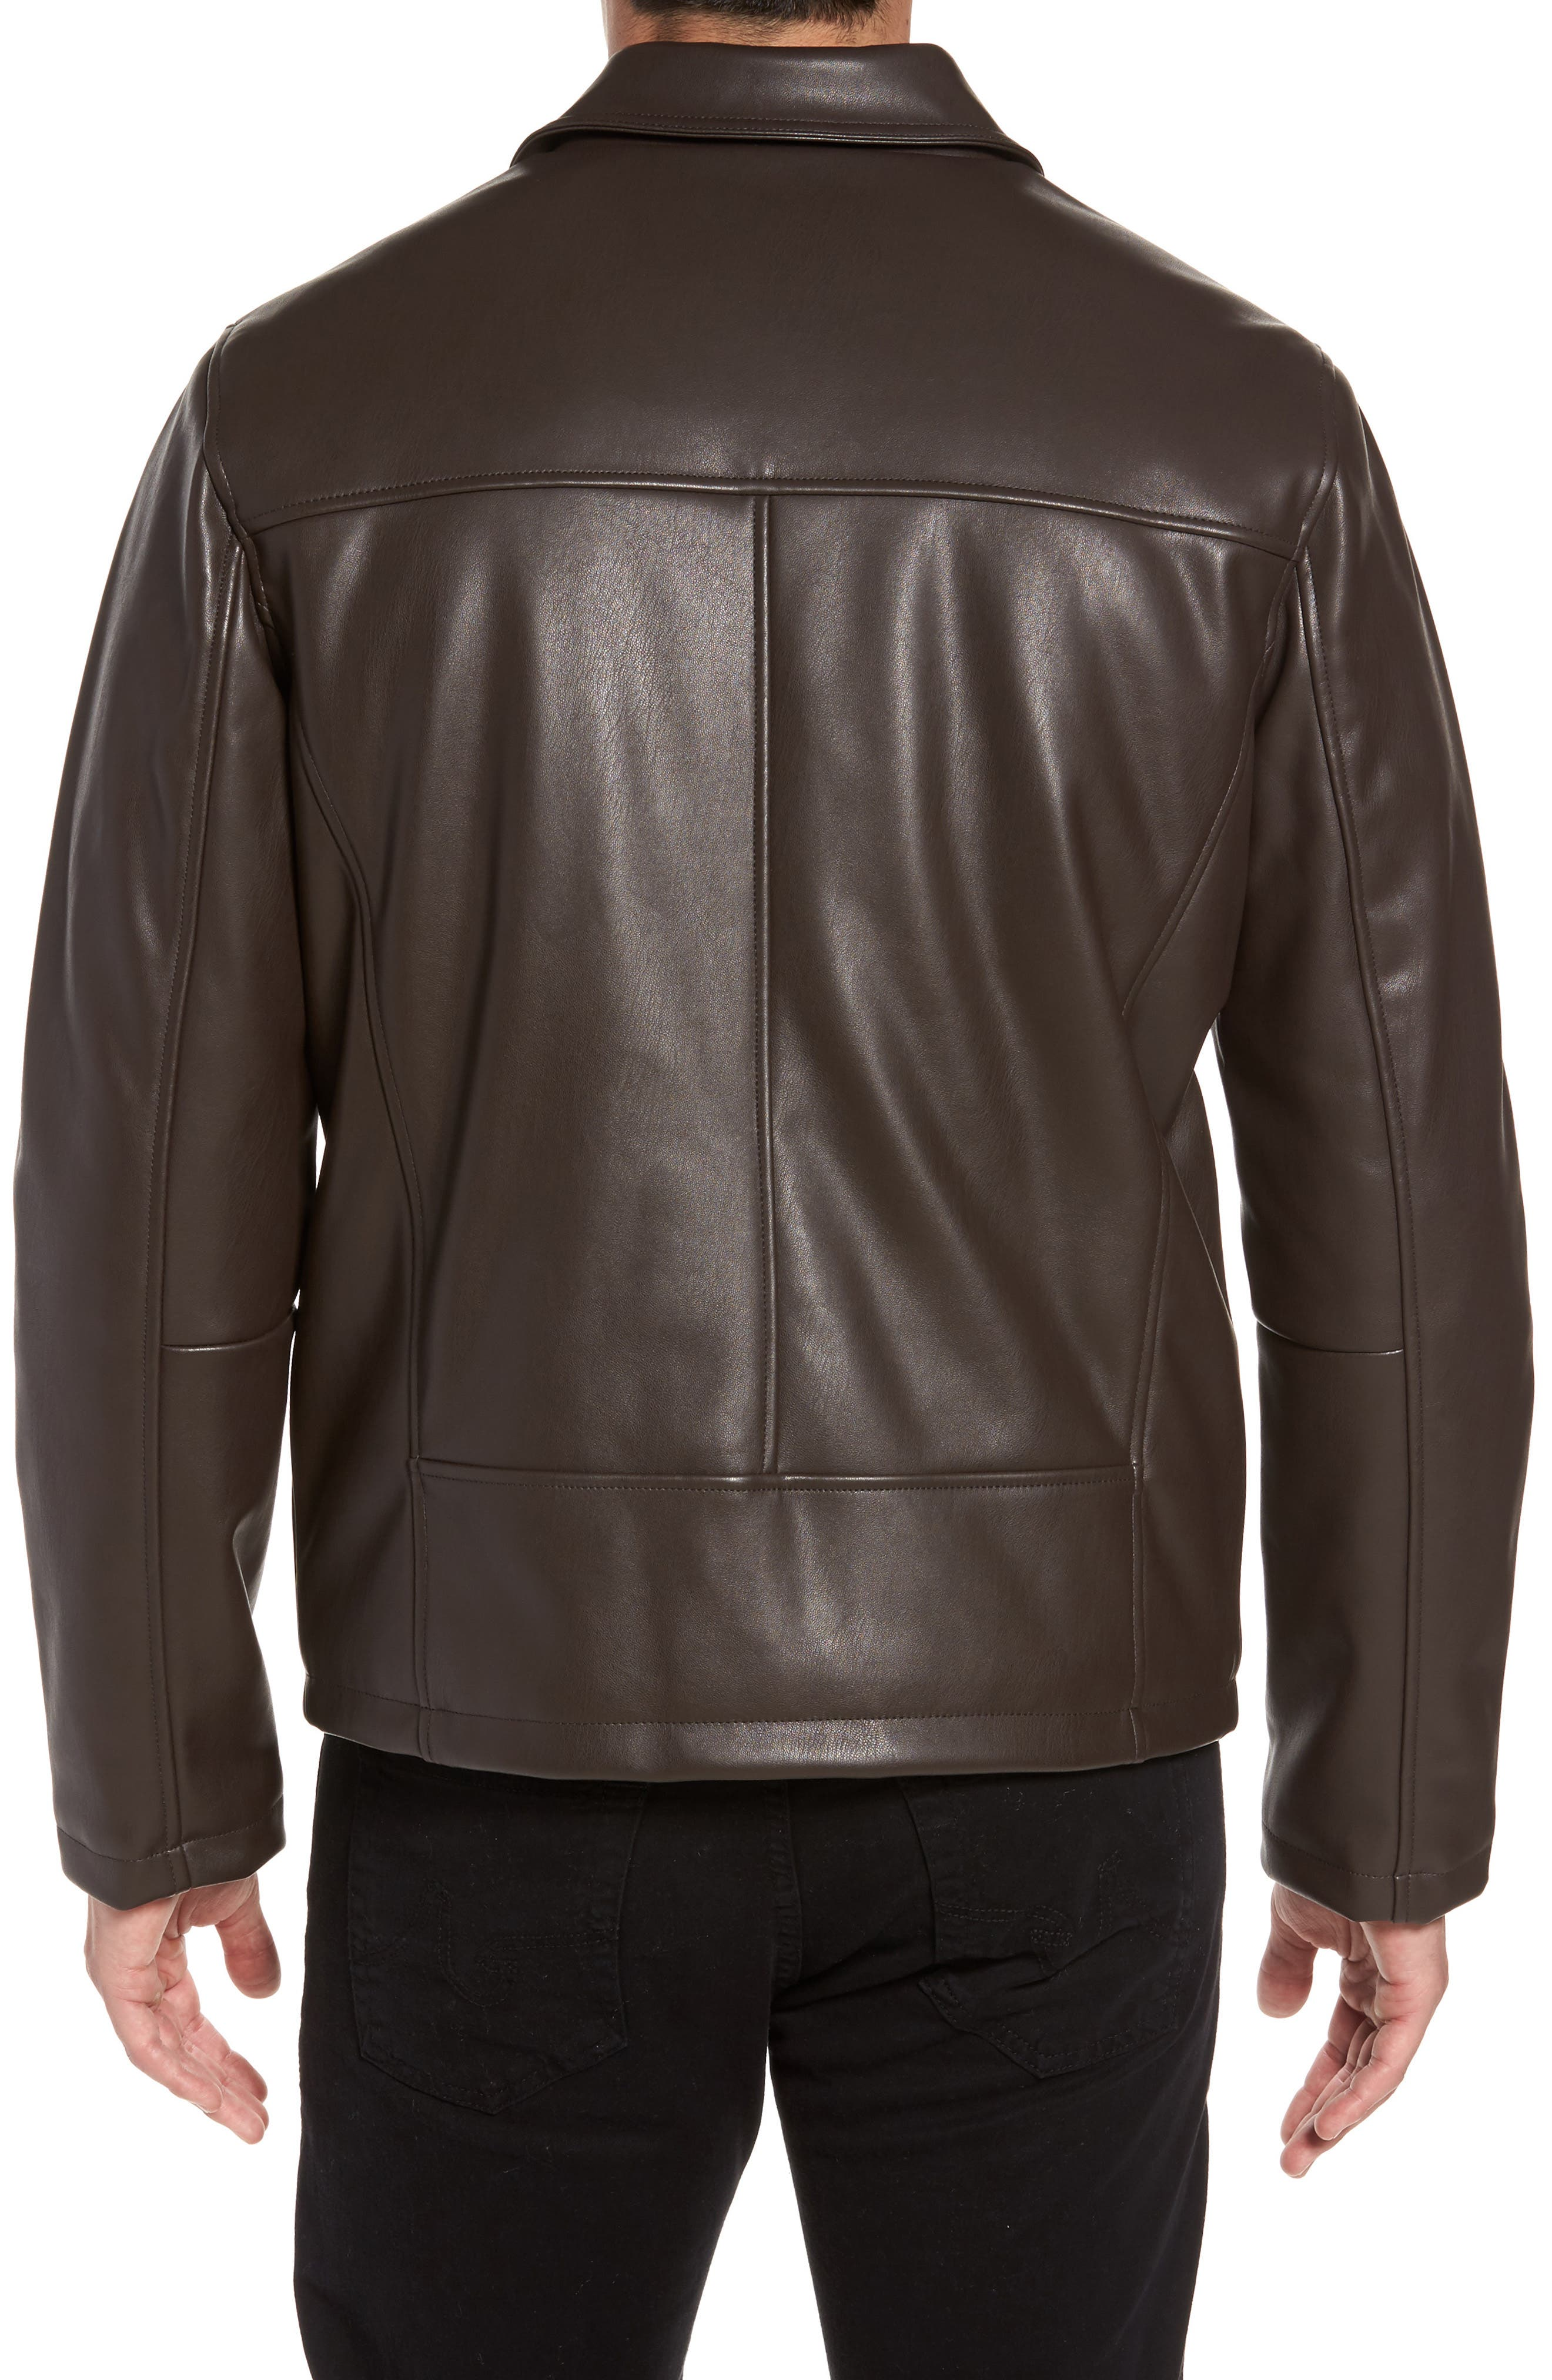 Collared Open Bottom Faux Leather Jacket,                             Alternate thumbnail 2, color,                             Dark Brown